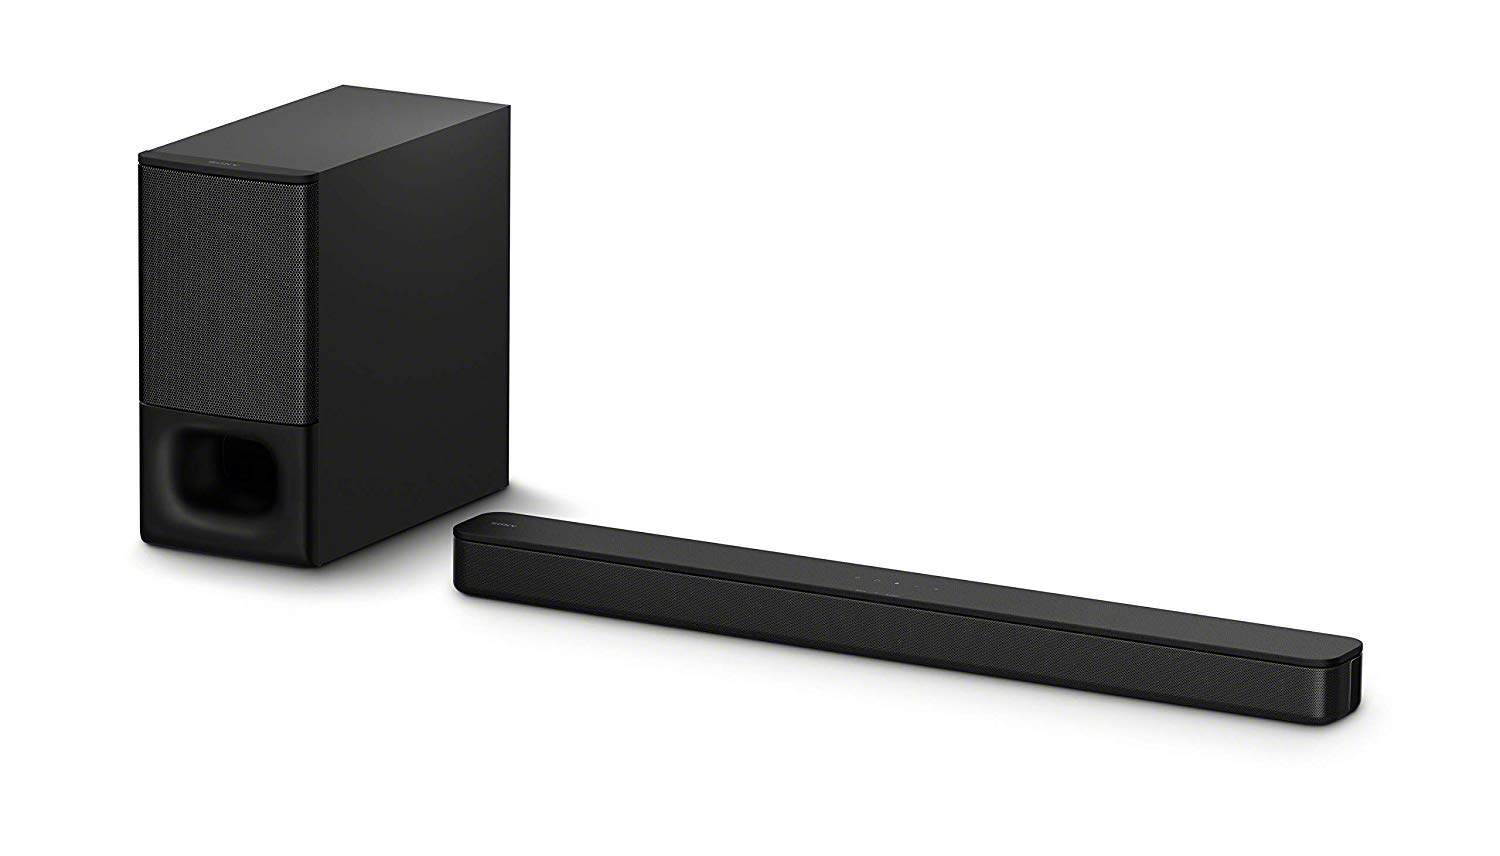 Sony HT-S350 Soundbar with Wireless Subwoofer - Amazon